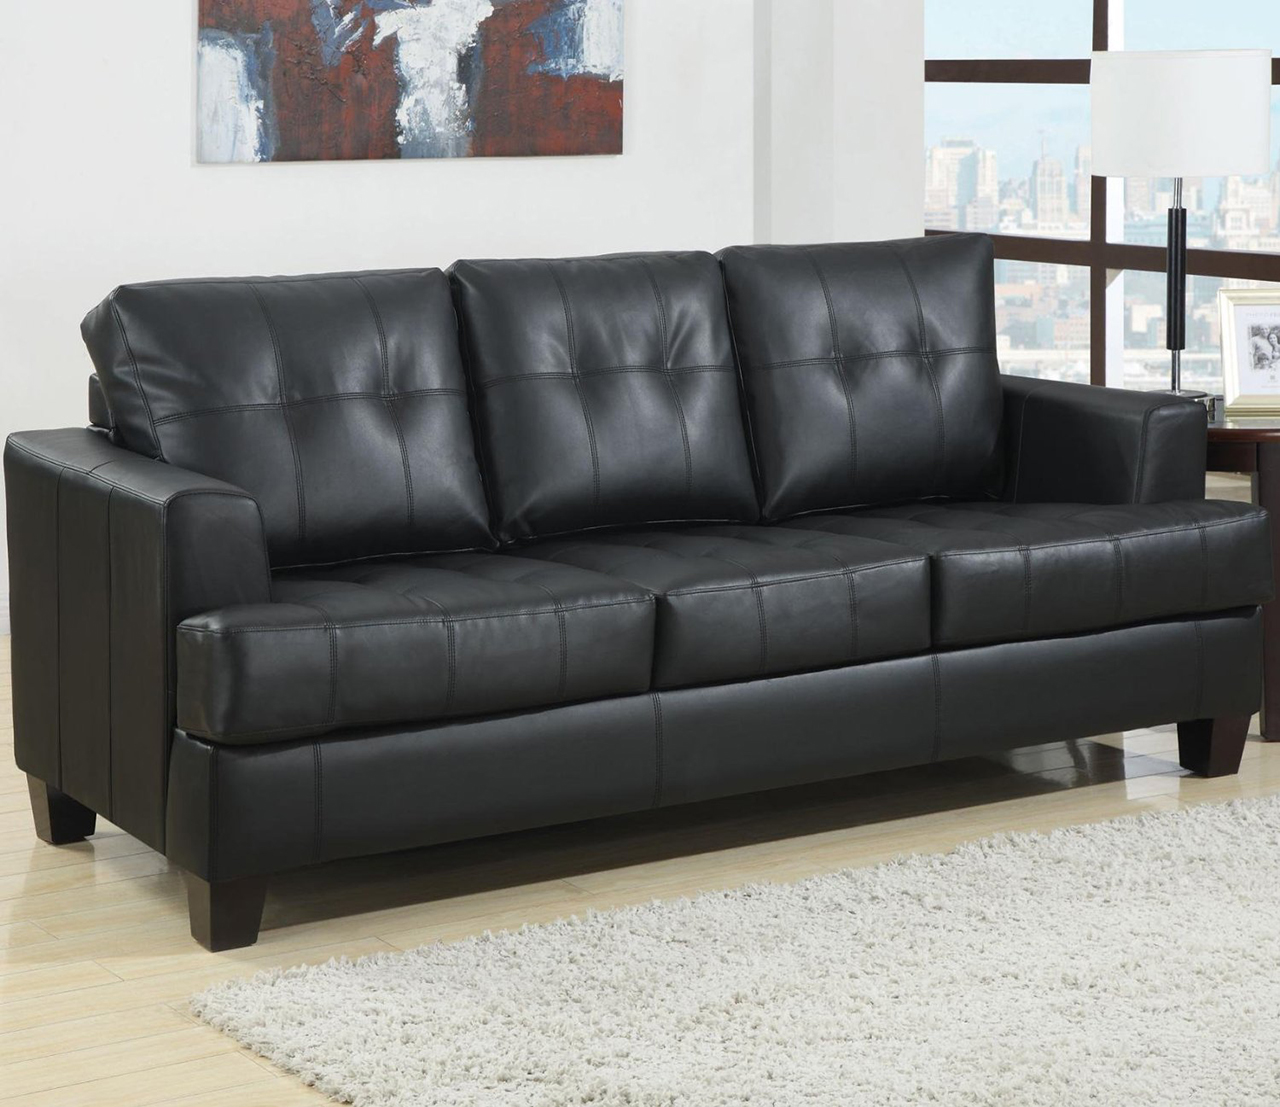 Sleeper Sofa   Coaster Home Furnishings Contemporary Sleeper, Black